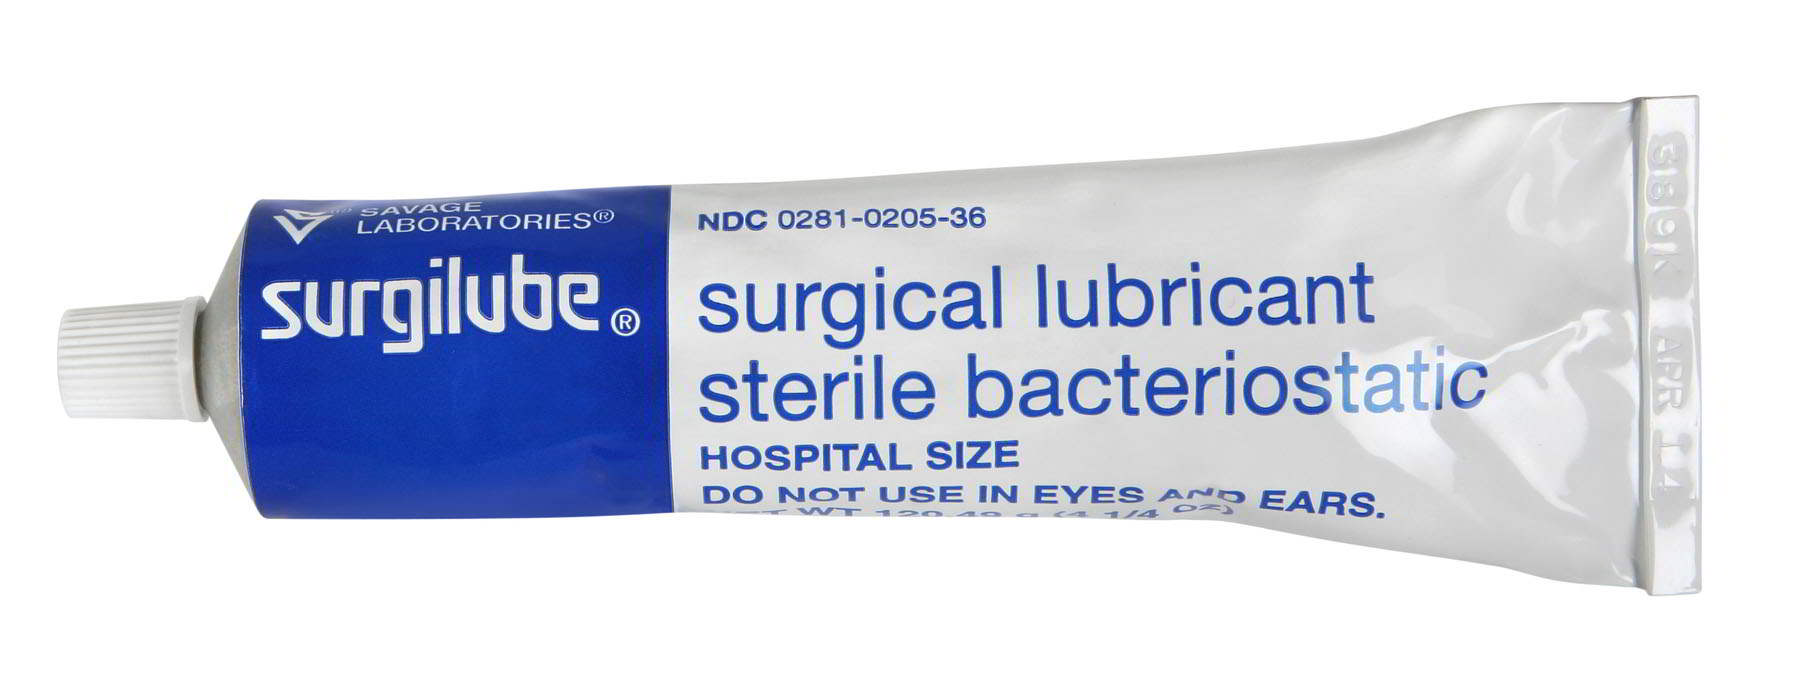 Surgilube Surgical Lubricant by Sandoz